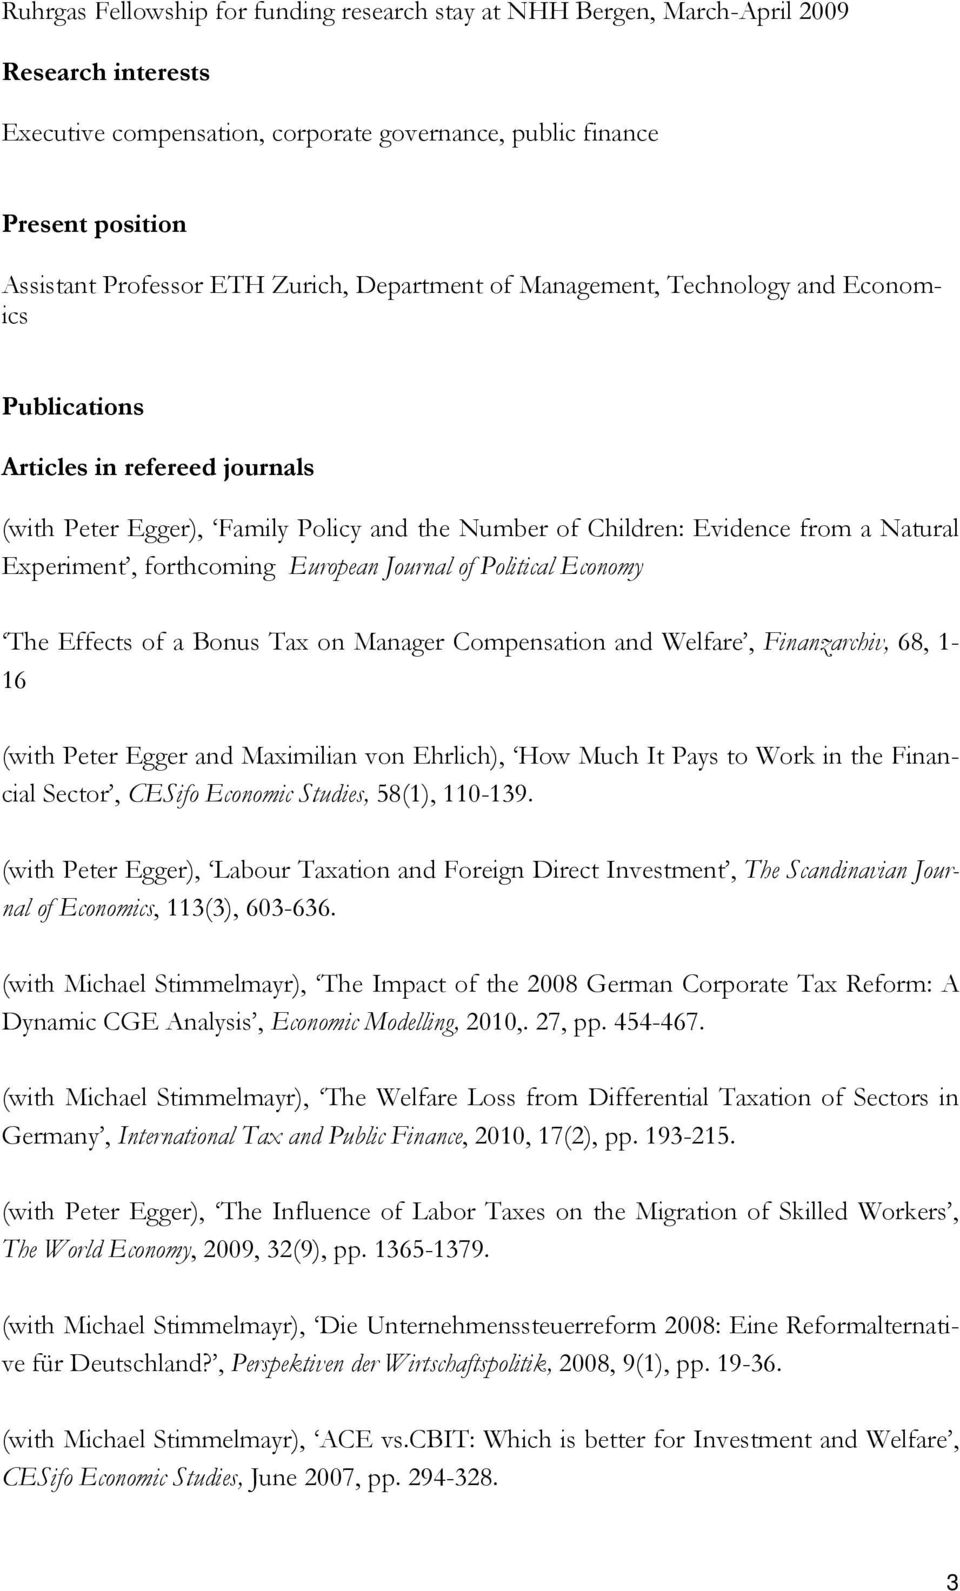 forthcoming European Journal of Political Economy The Effects of a Bonus Tax on Manager Compensation and Welfare, Finanzarchiv, 68, 1-16 (with Peter Egger and Maximilian von Ehrlich), How Much It